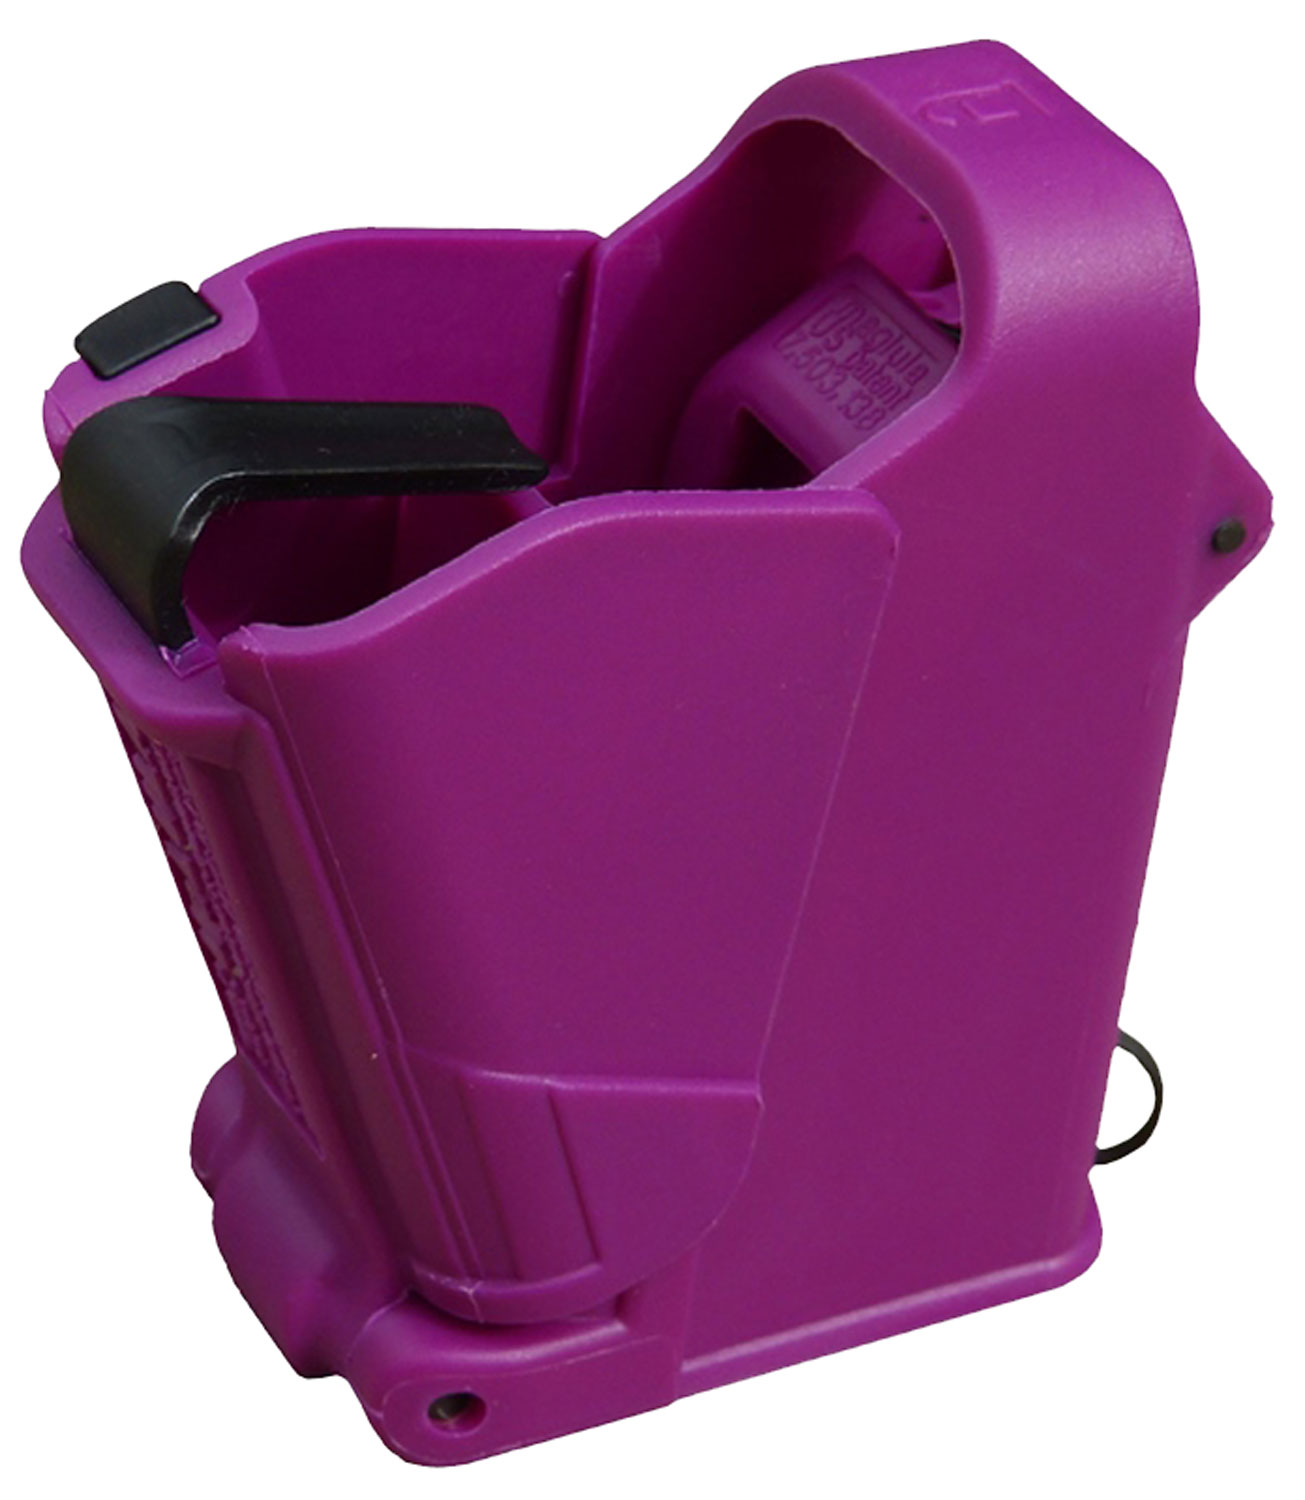 maglula UP60PR LULA 9mm to 45ACP Mag Loader Purple Finish